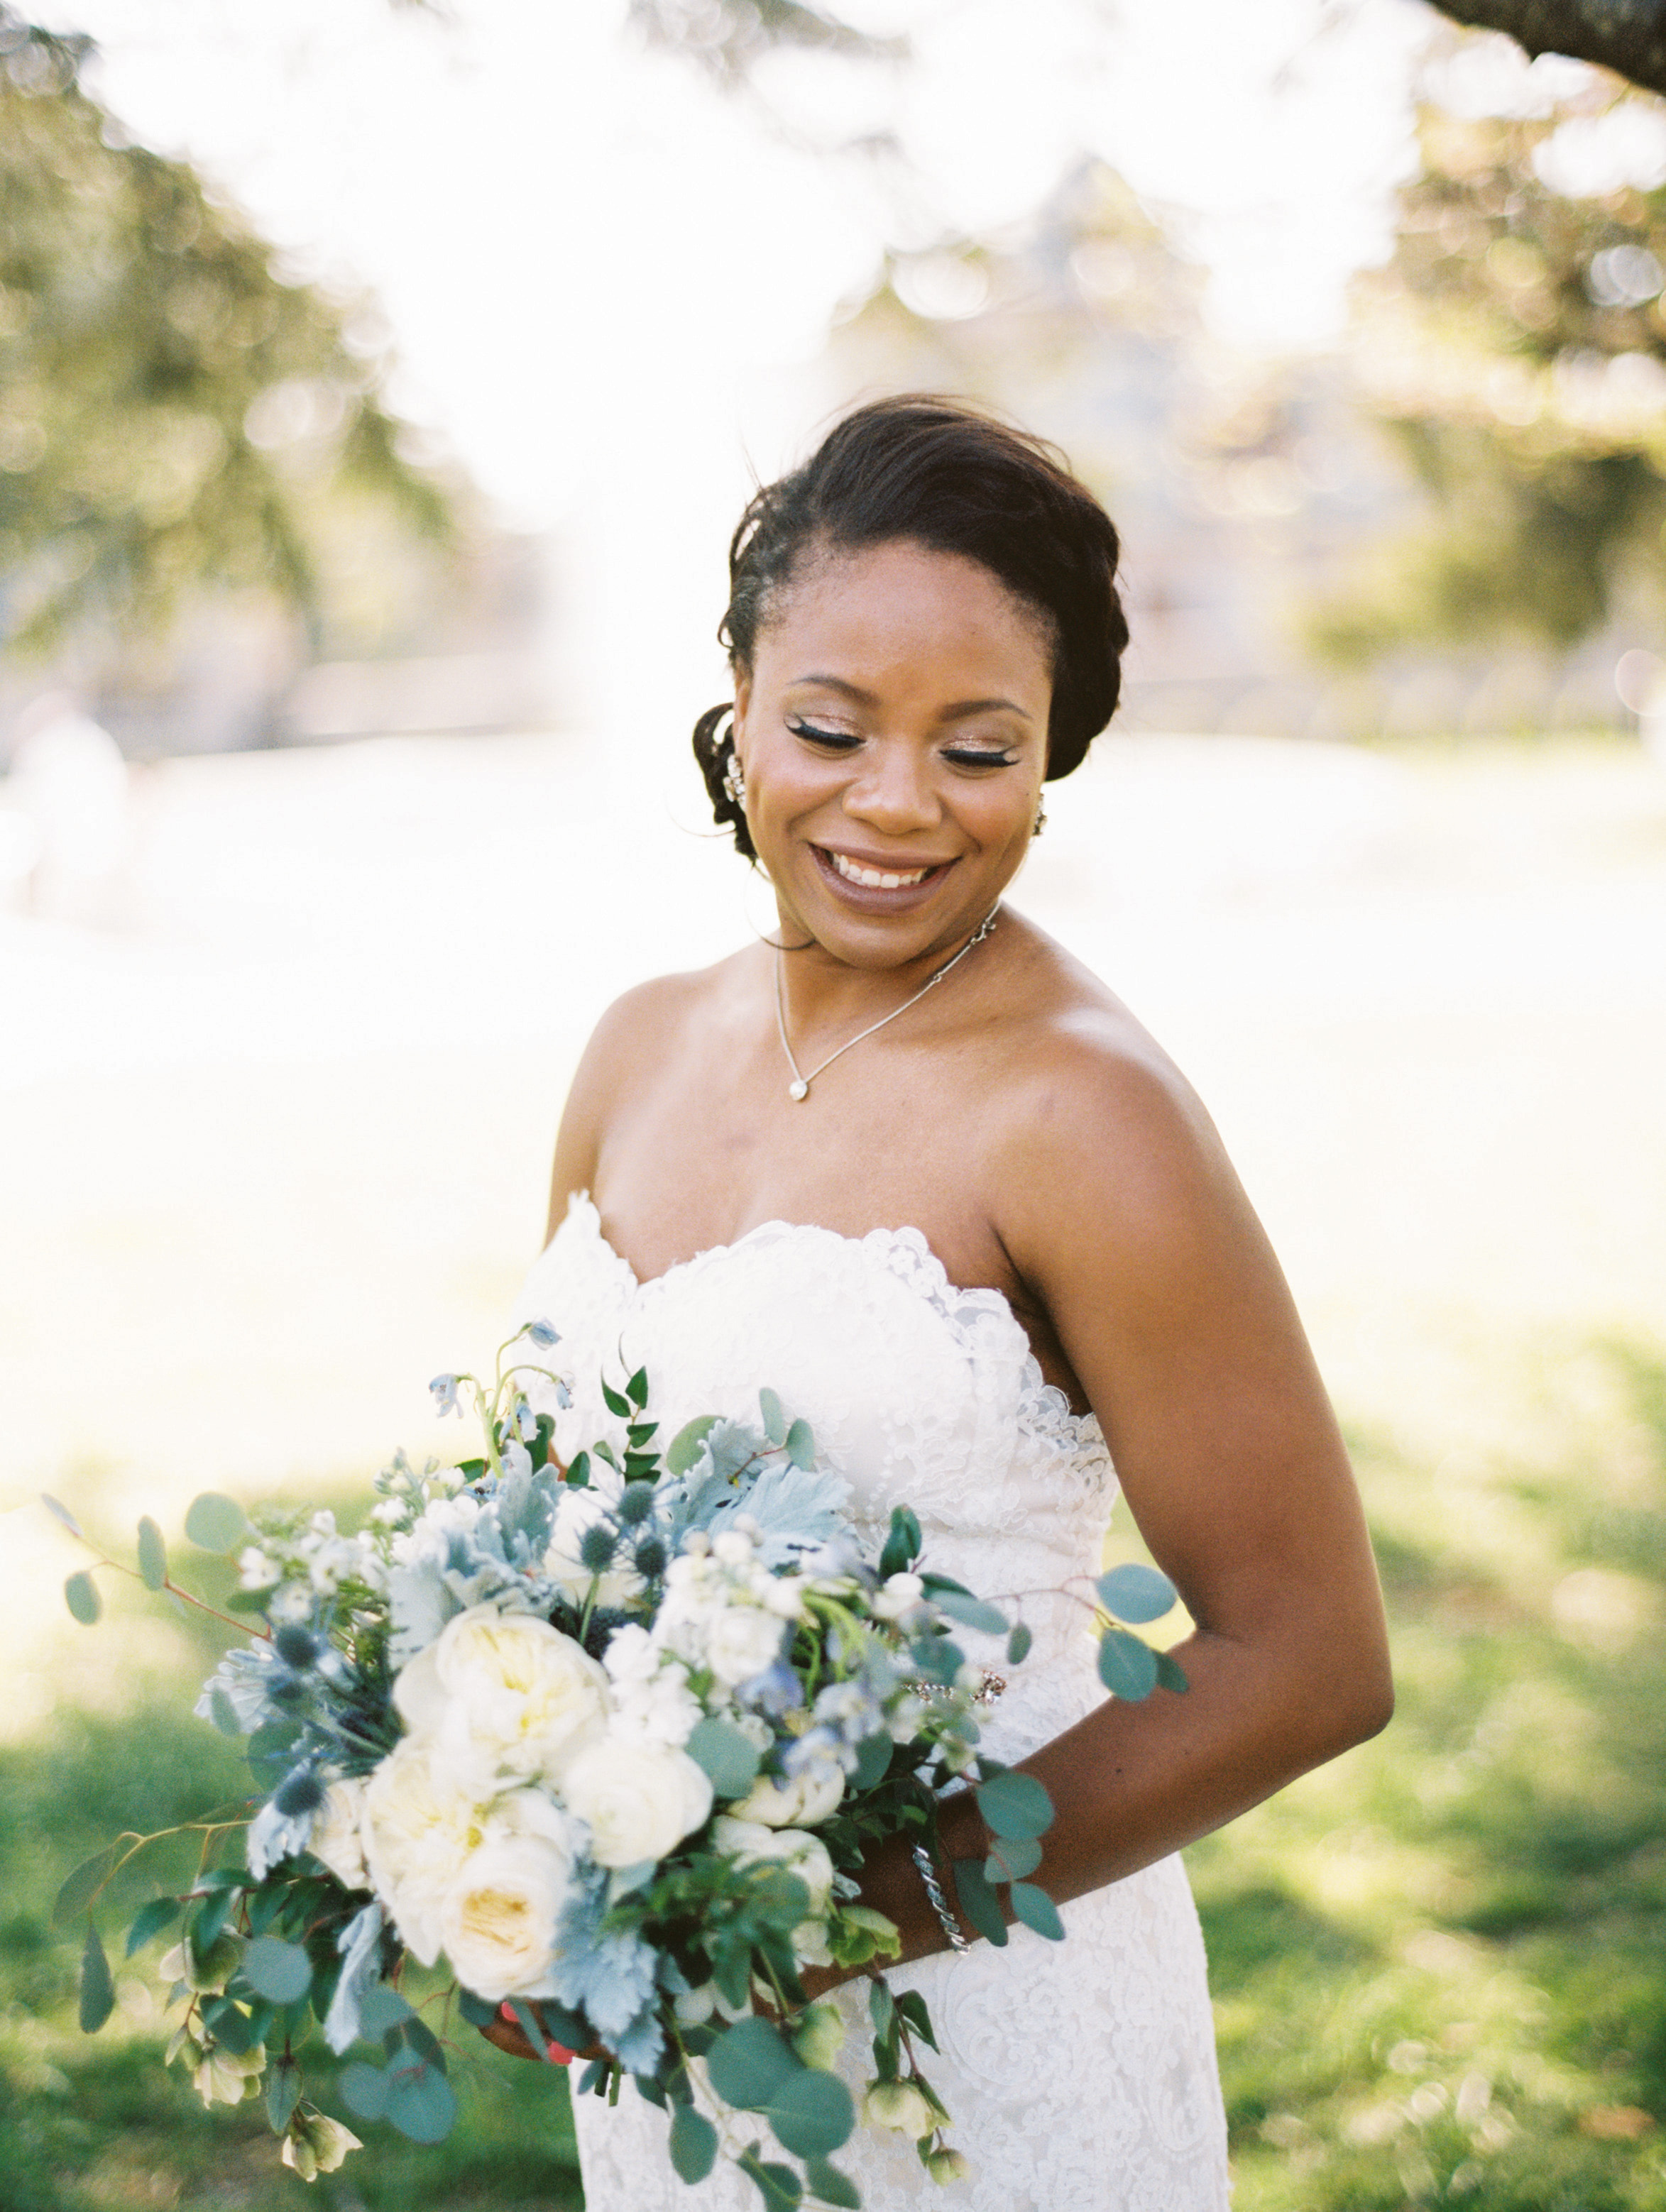 wedding bride holding bouquet white blue flowers